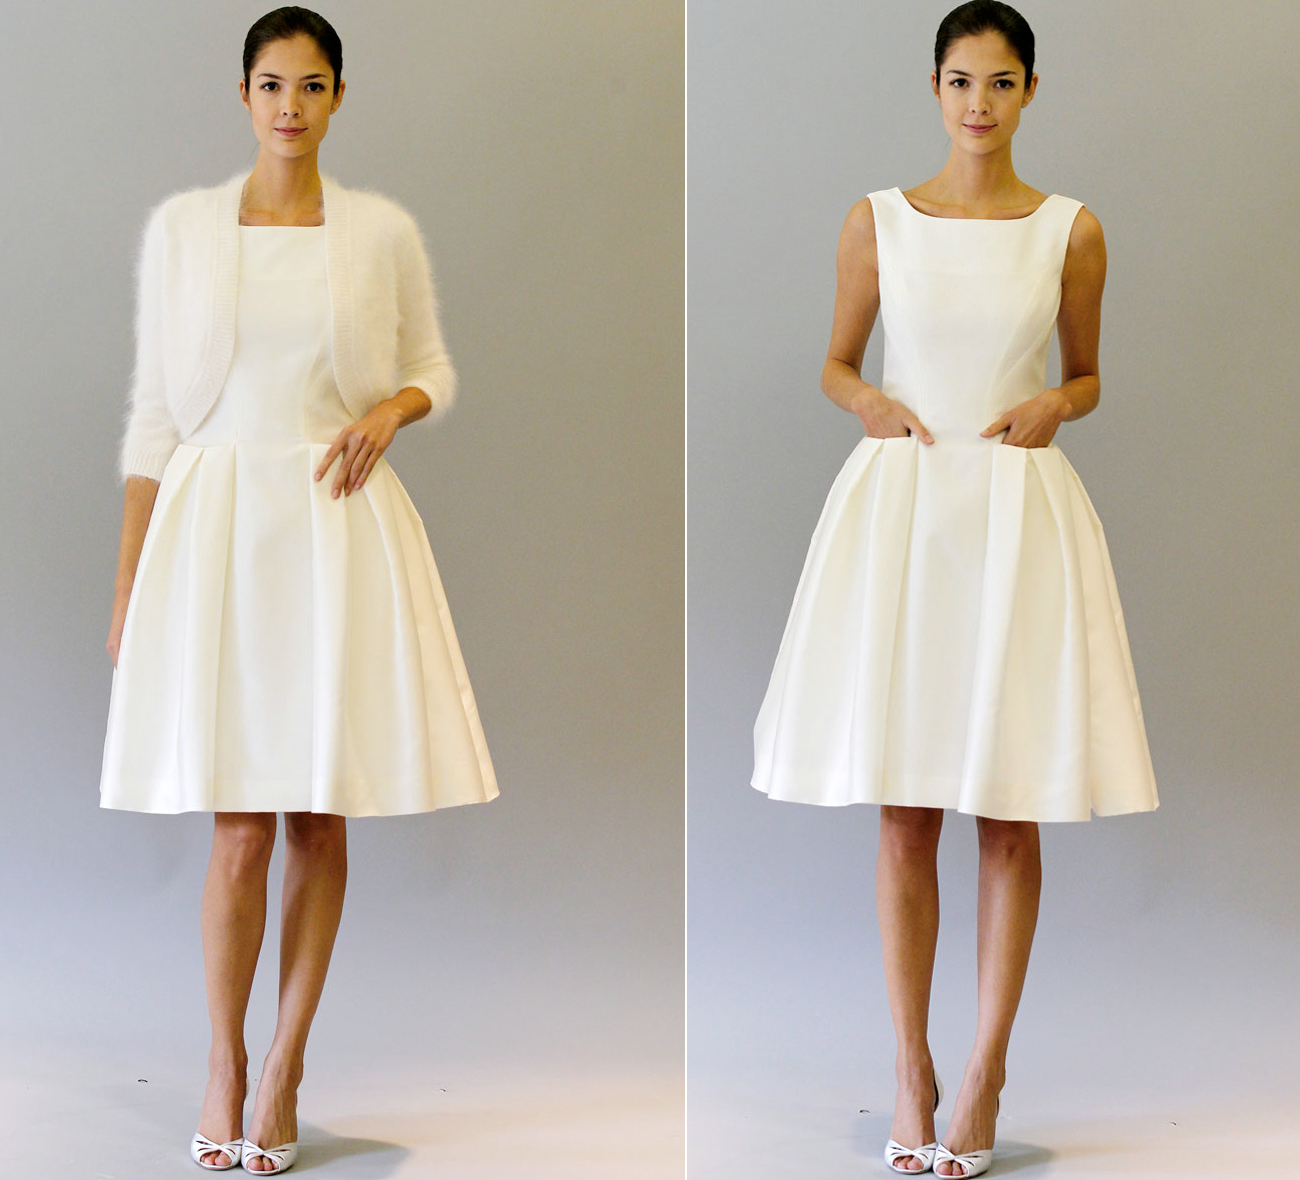 Little-white-dresses-carolina-herrera-2012-bridal-gowns.original